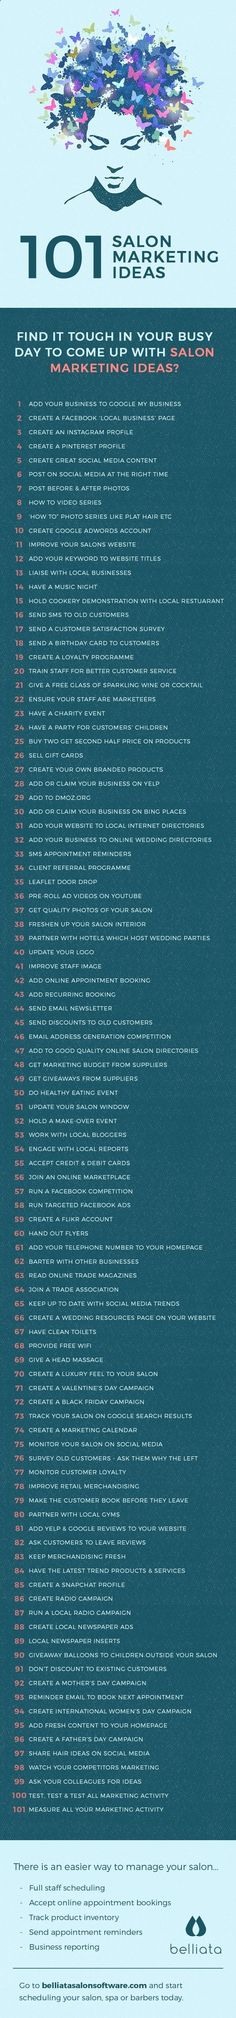 Sometimes finding marketing inspiration for your salon can be tricky. But Paul from Belliata Salon Software has put together some great and effective salon marketing ideas for you to easily do in your salon and keep those customers coming amzn.to/2saZO4H